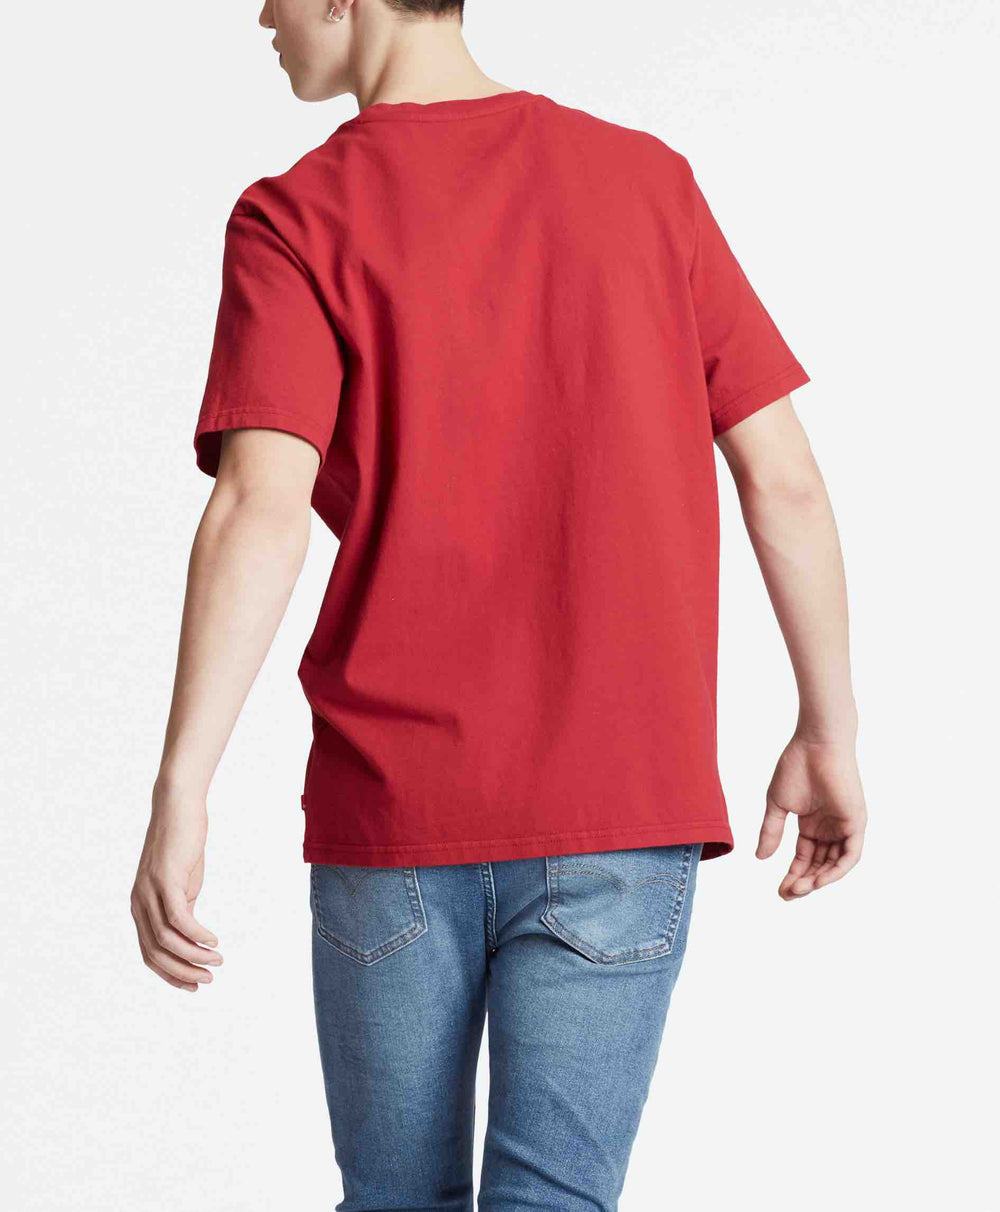 RELAXED GRAPHIC TEE BABYTAB SSNL BRILLI